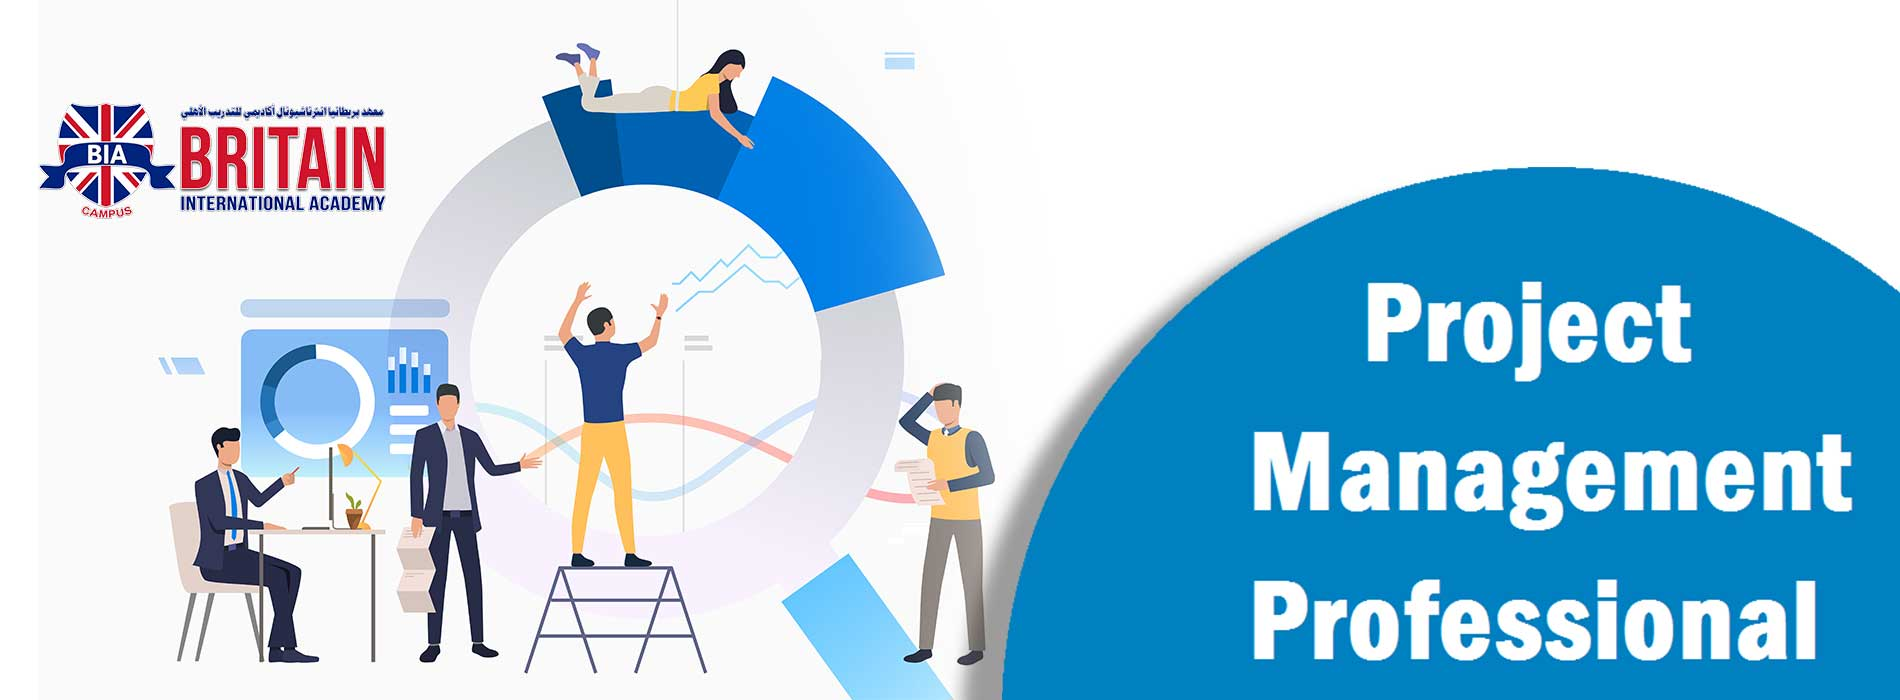 BECOME A PROFESSIONAL WITH PROJECT MANAGEMENT PROFESSIONAL (PMP)